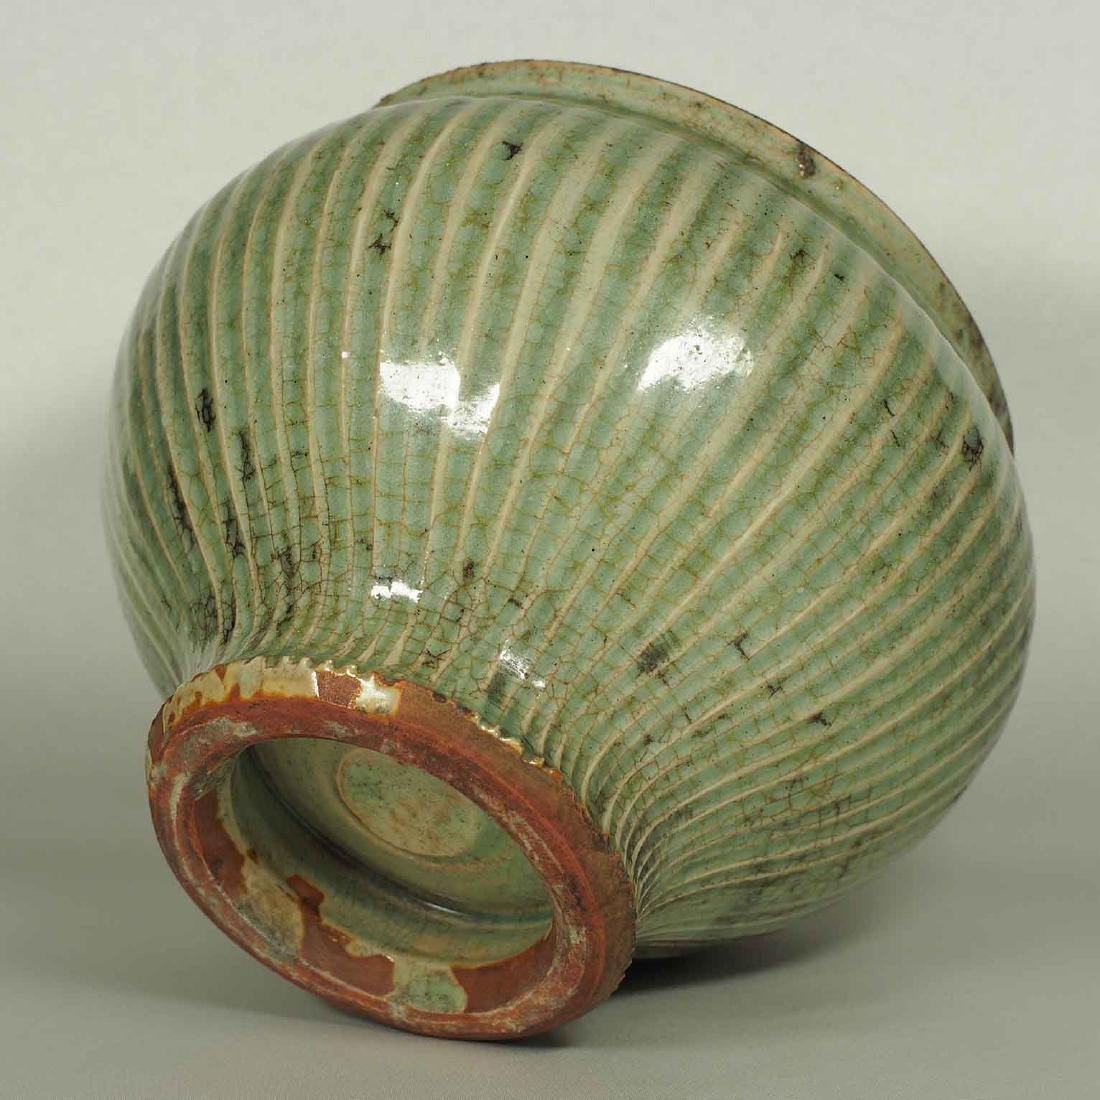 Longquan Fluted Jar with Lid, late Southern Song-early - 8